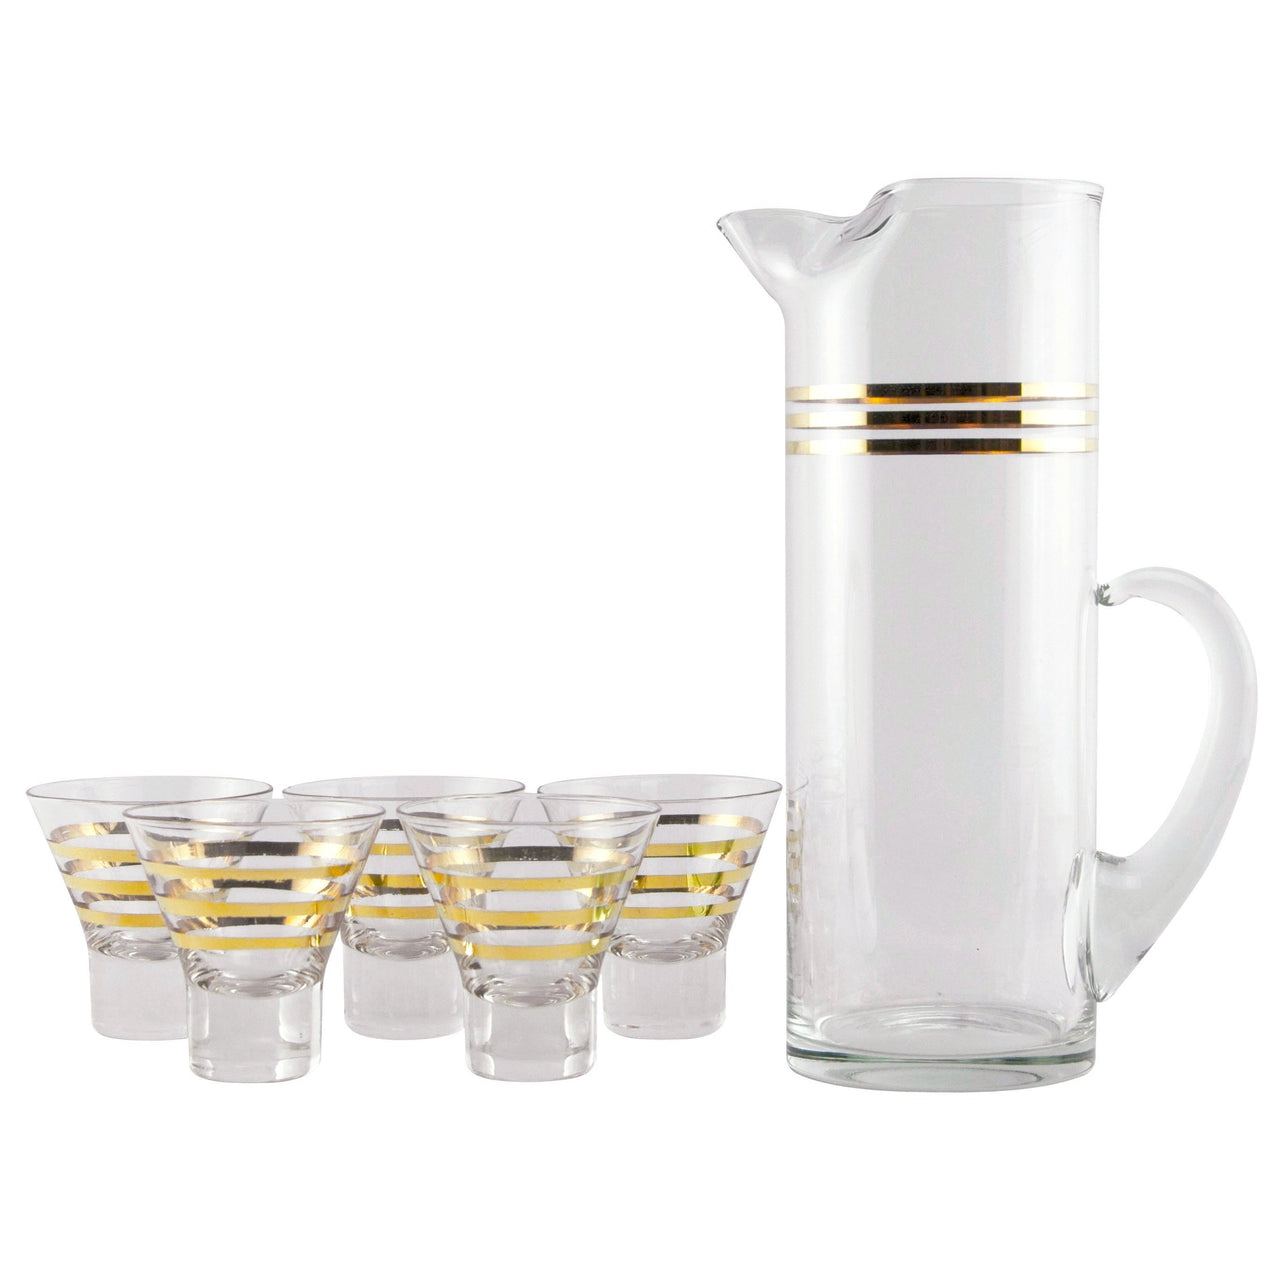 Gold Band Cocktail Pitcher Set | The Hour Shop Vintage Glass